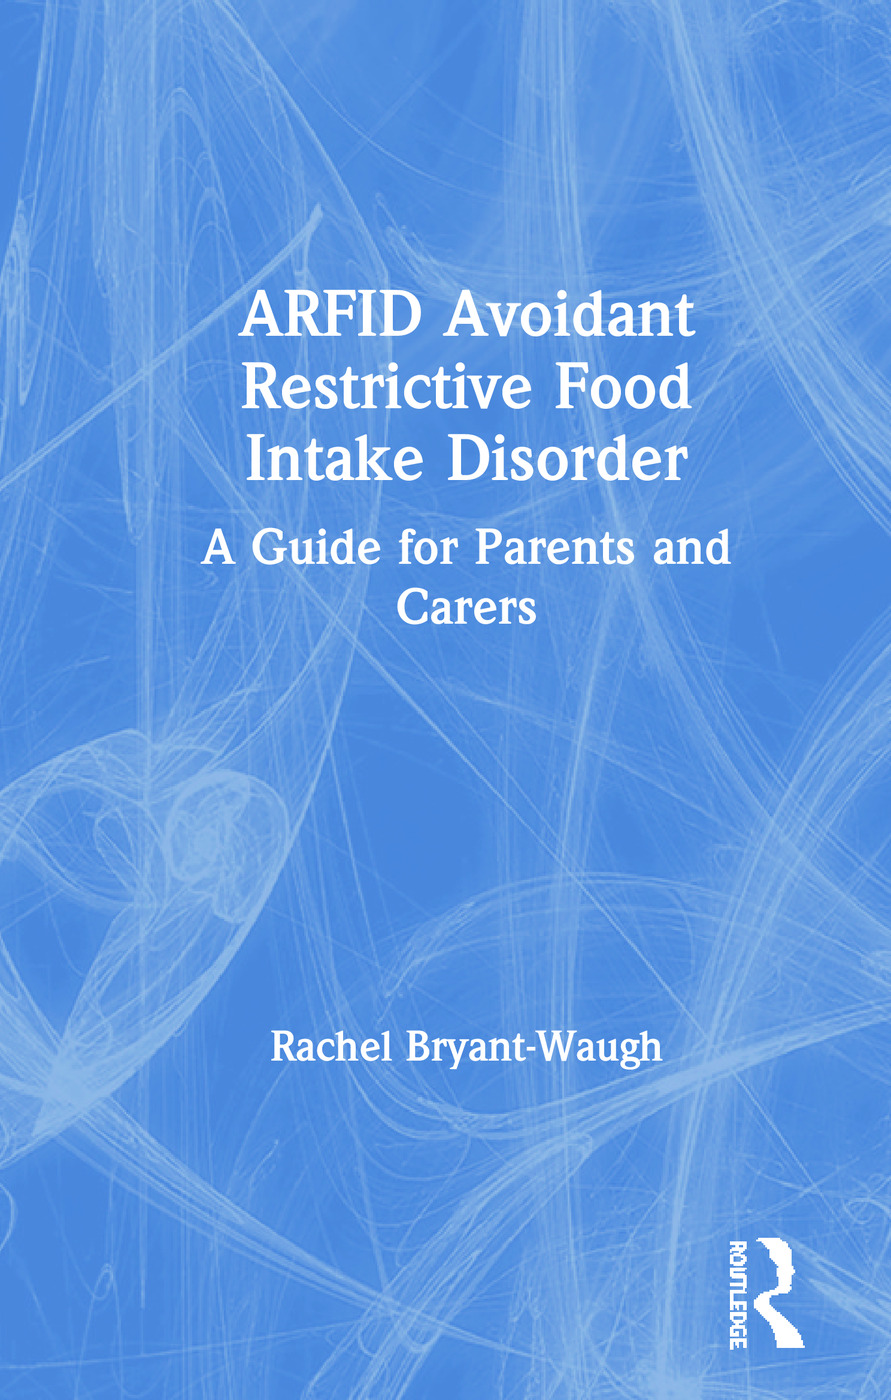 ARFID Avoidant Restrictive Food Intake Disorder: A Guide for Parents and Carers book cover